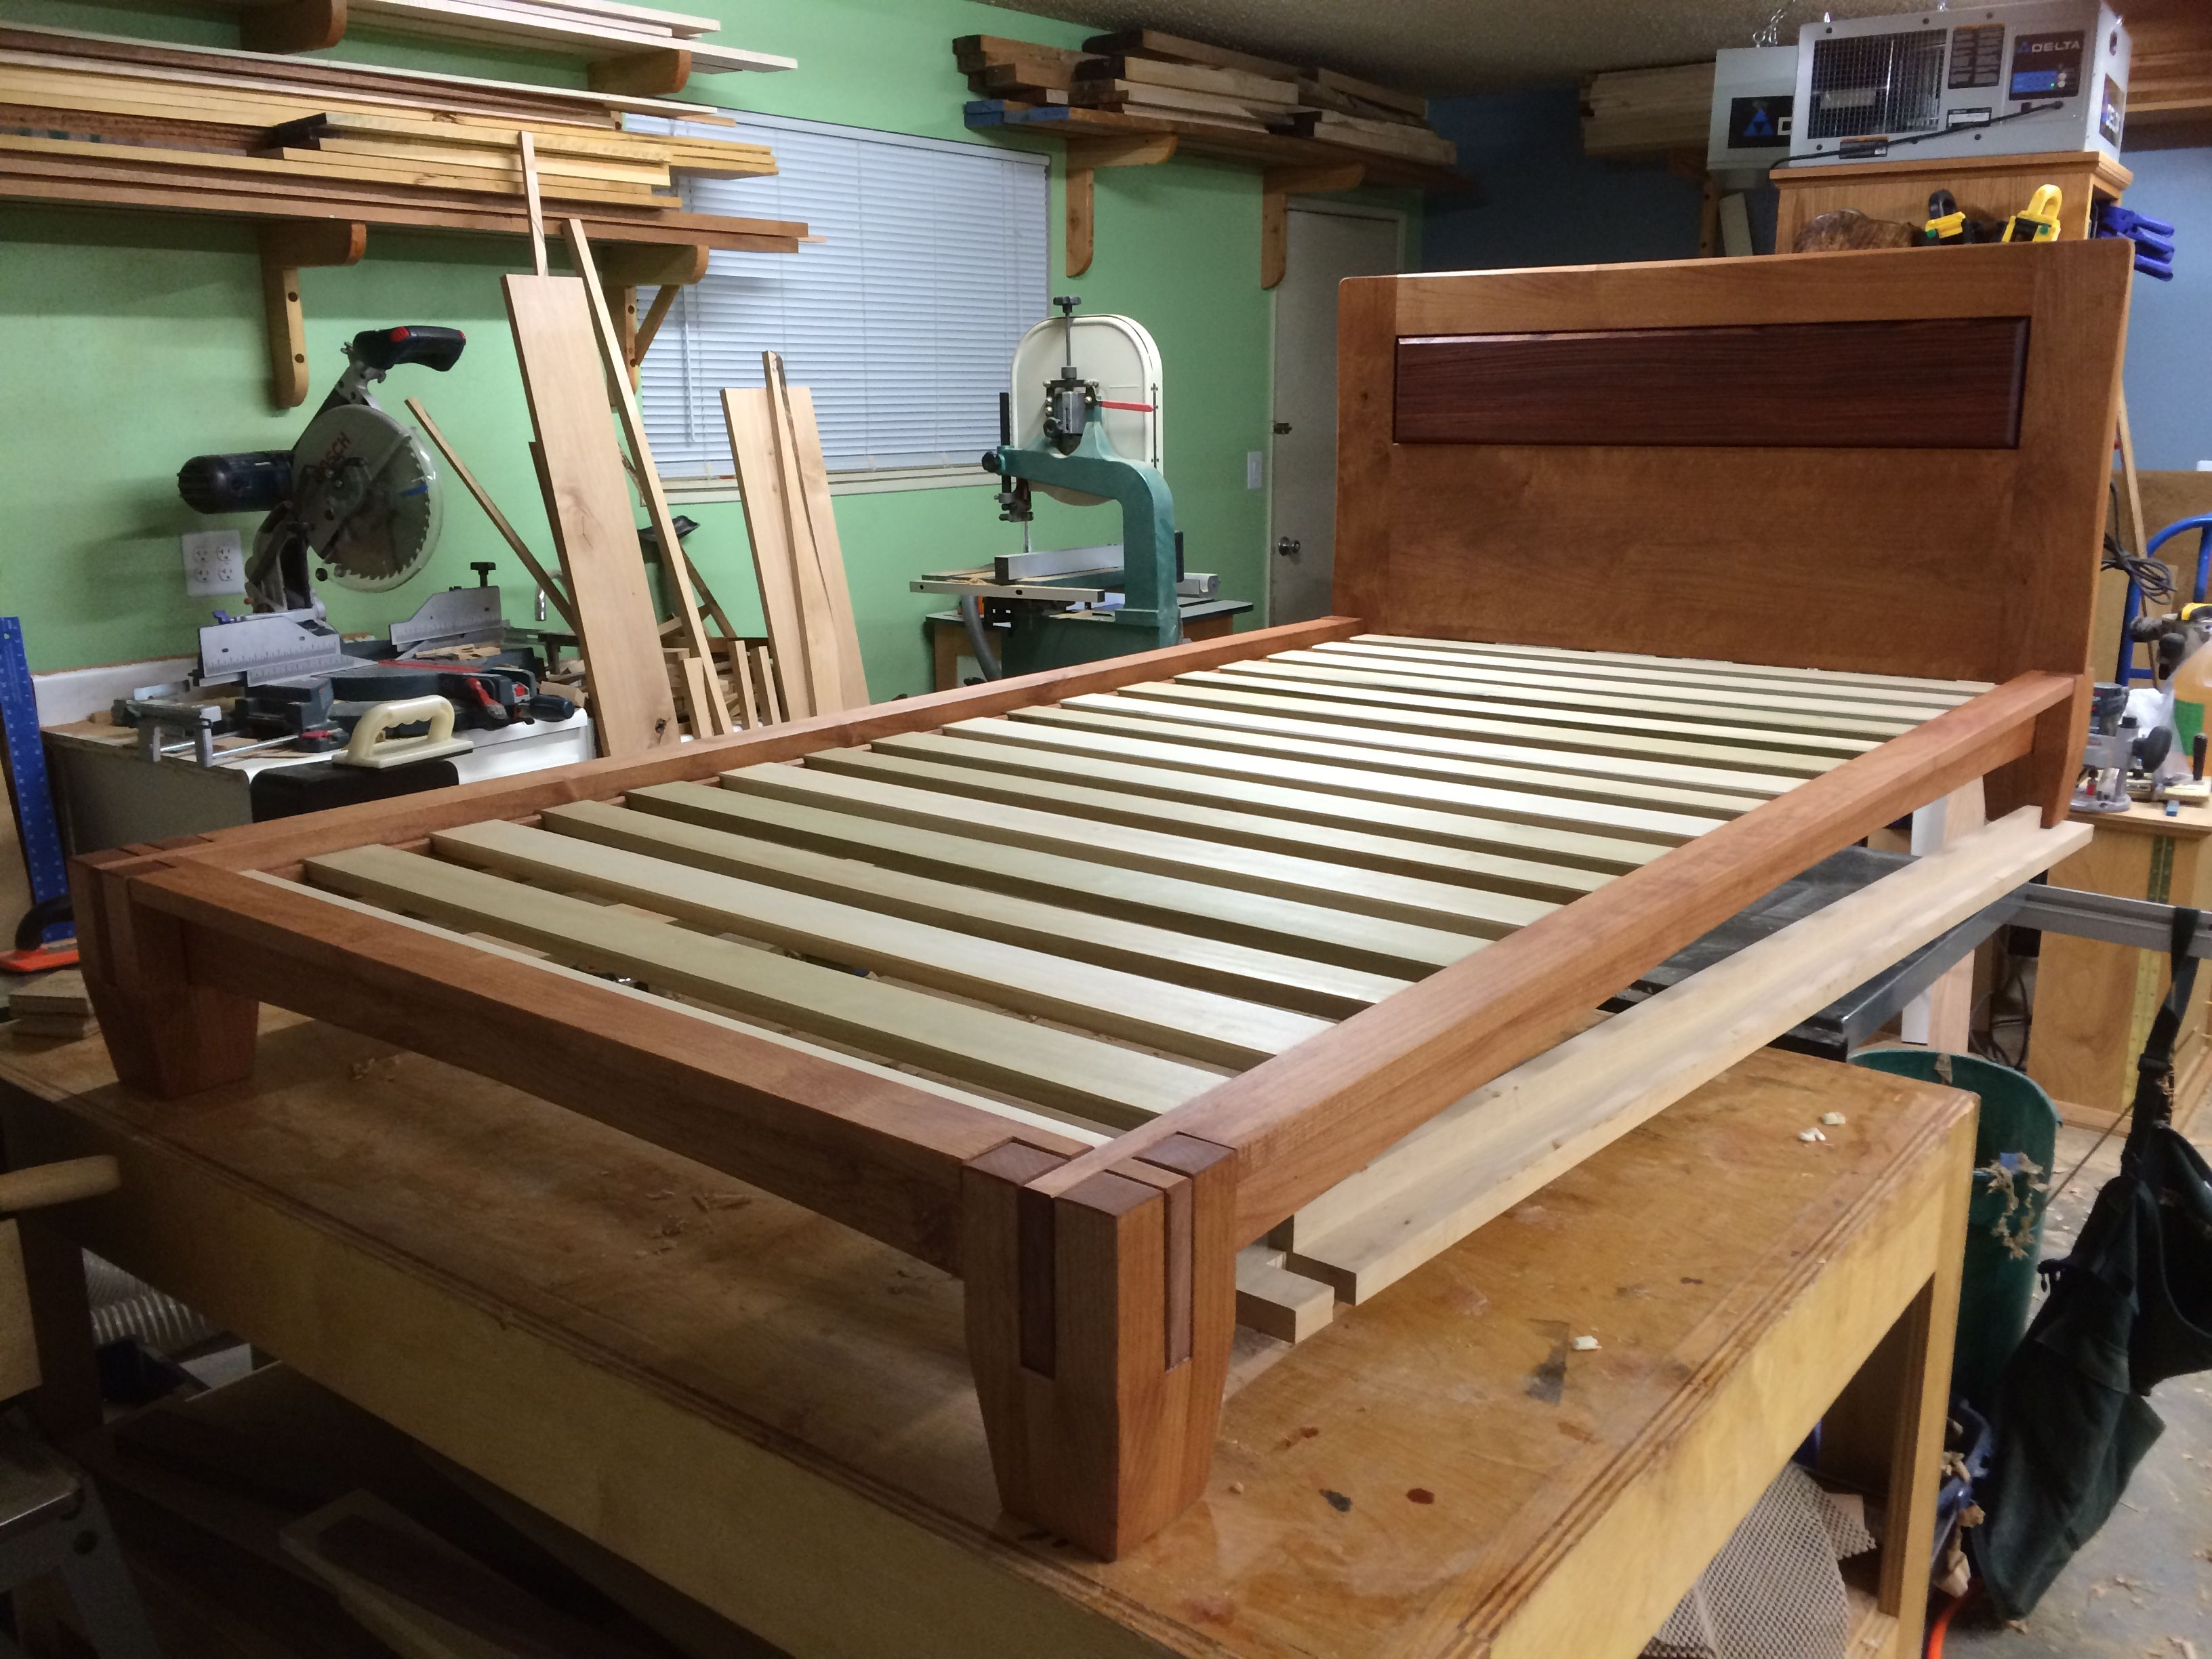 Diy Tatami Style Platform Bed With Able Plans